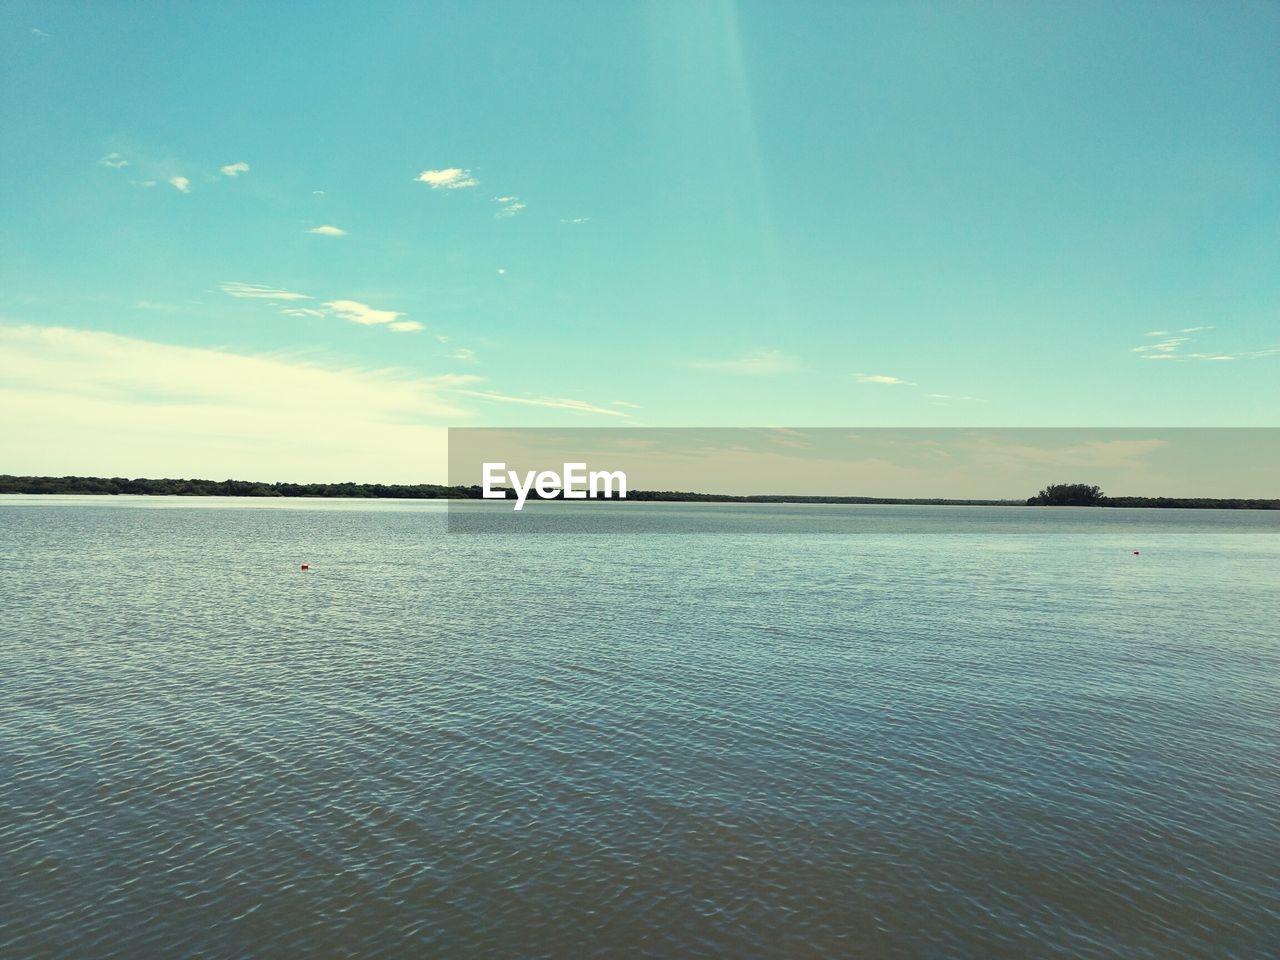 scenics, tranquil scene, sky, sea, tranquility, water, beauty in nature, nature, rippled, idyllic, waterfront, outdoors, blue, no people, cloud - sky, day, landscape, horizon over water, view into land